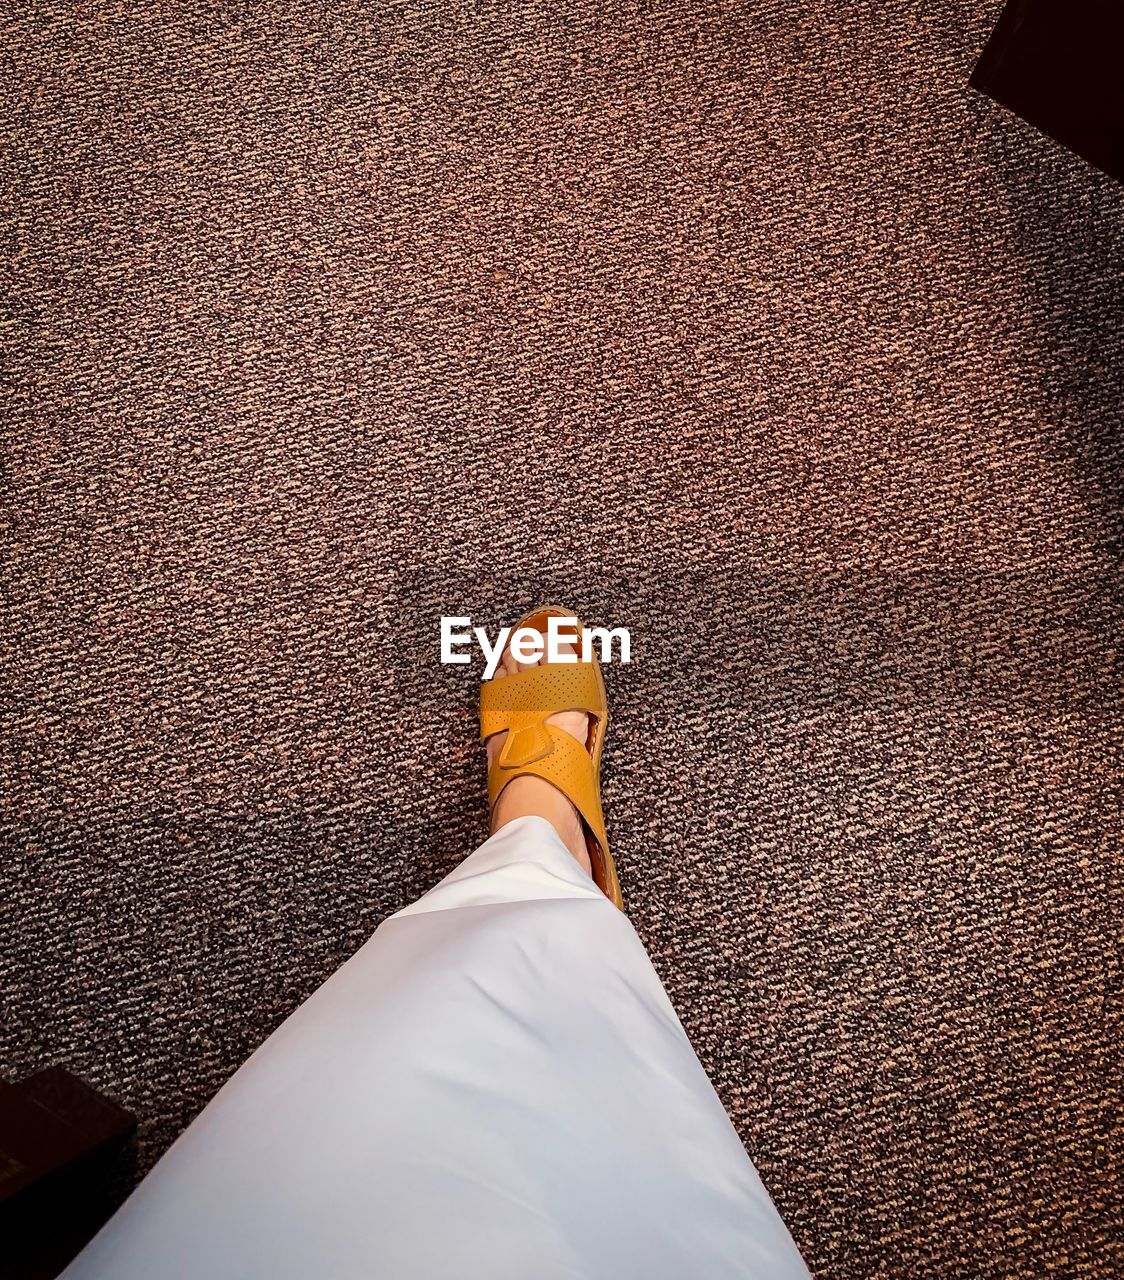 low section, human leg, shoe, one person, personal perspective, real people, body part, human body part, standing, lifestyles, high angle view, brown, men, directly above, human foot, day, flooring, carpet - decor, indoors